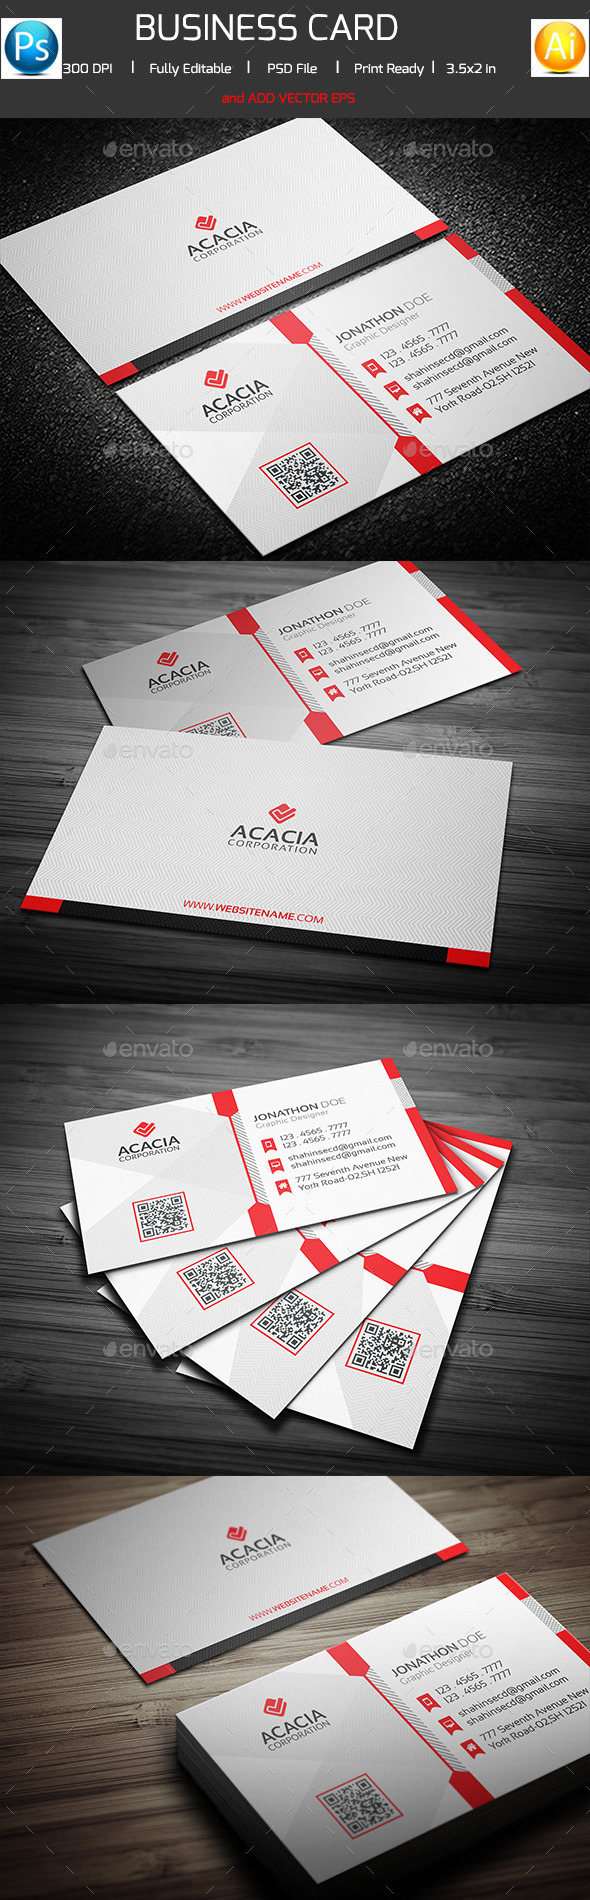 Corporate Business Card V-02 - Corporate Business Cards